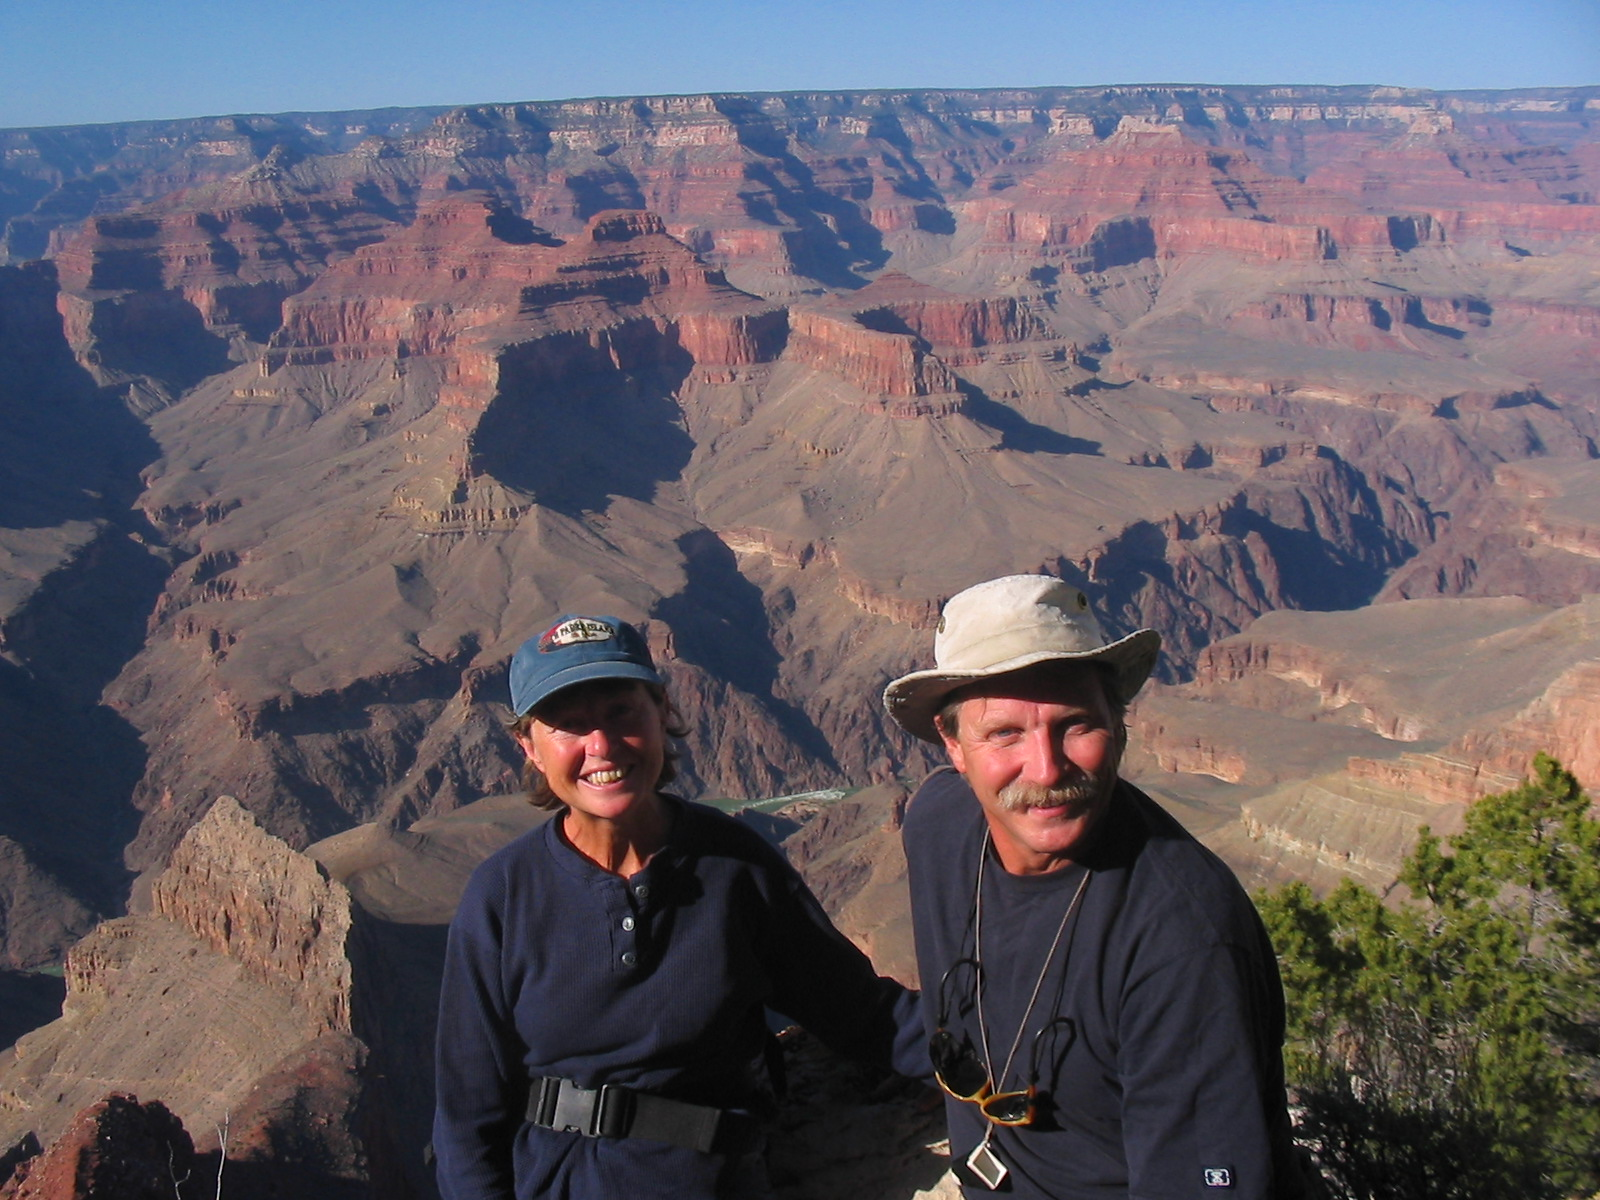 Marianne and husband in Grand Canyon National Park.